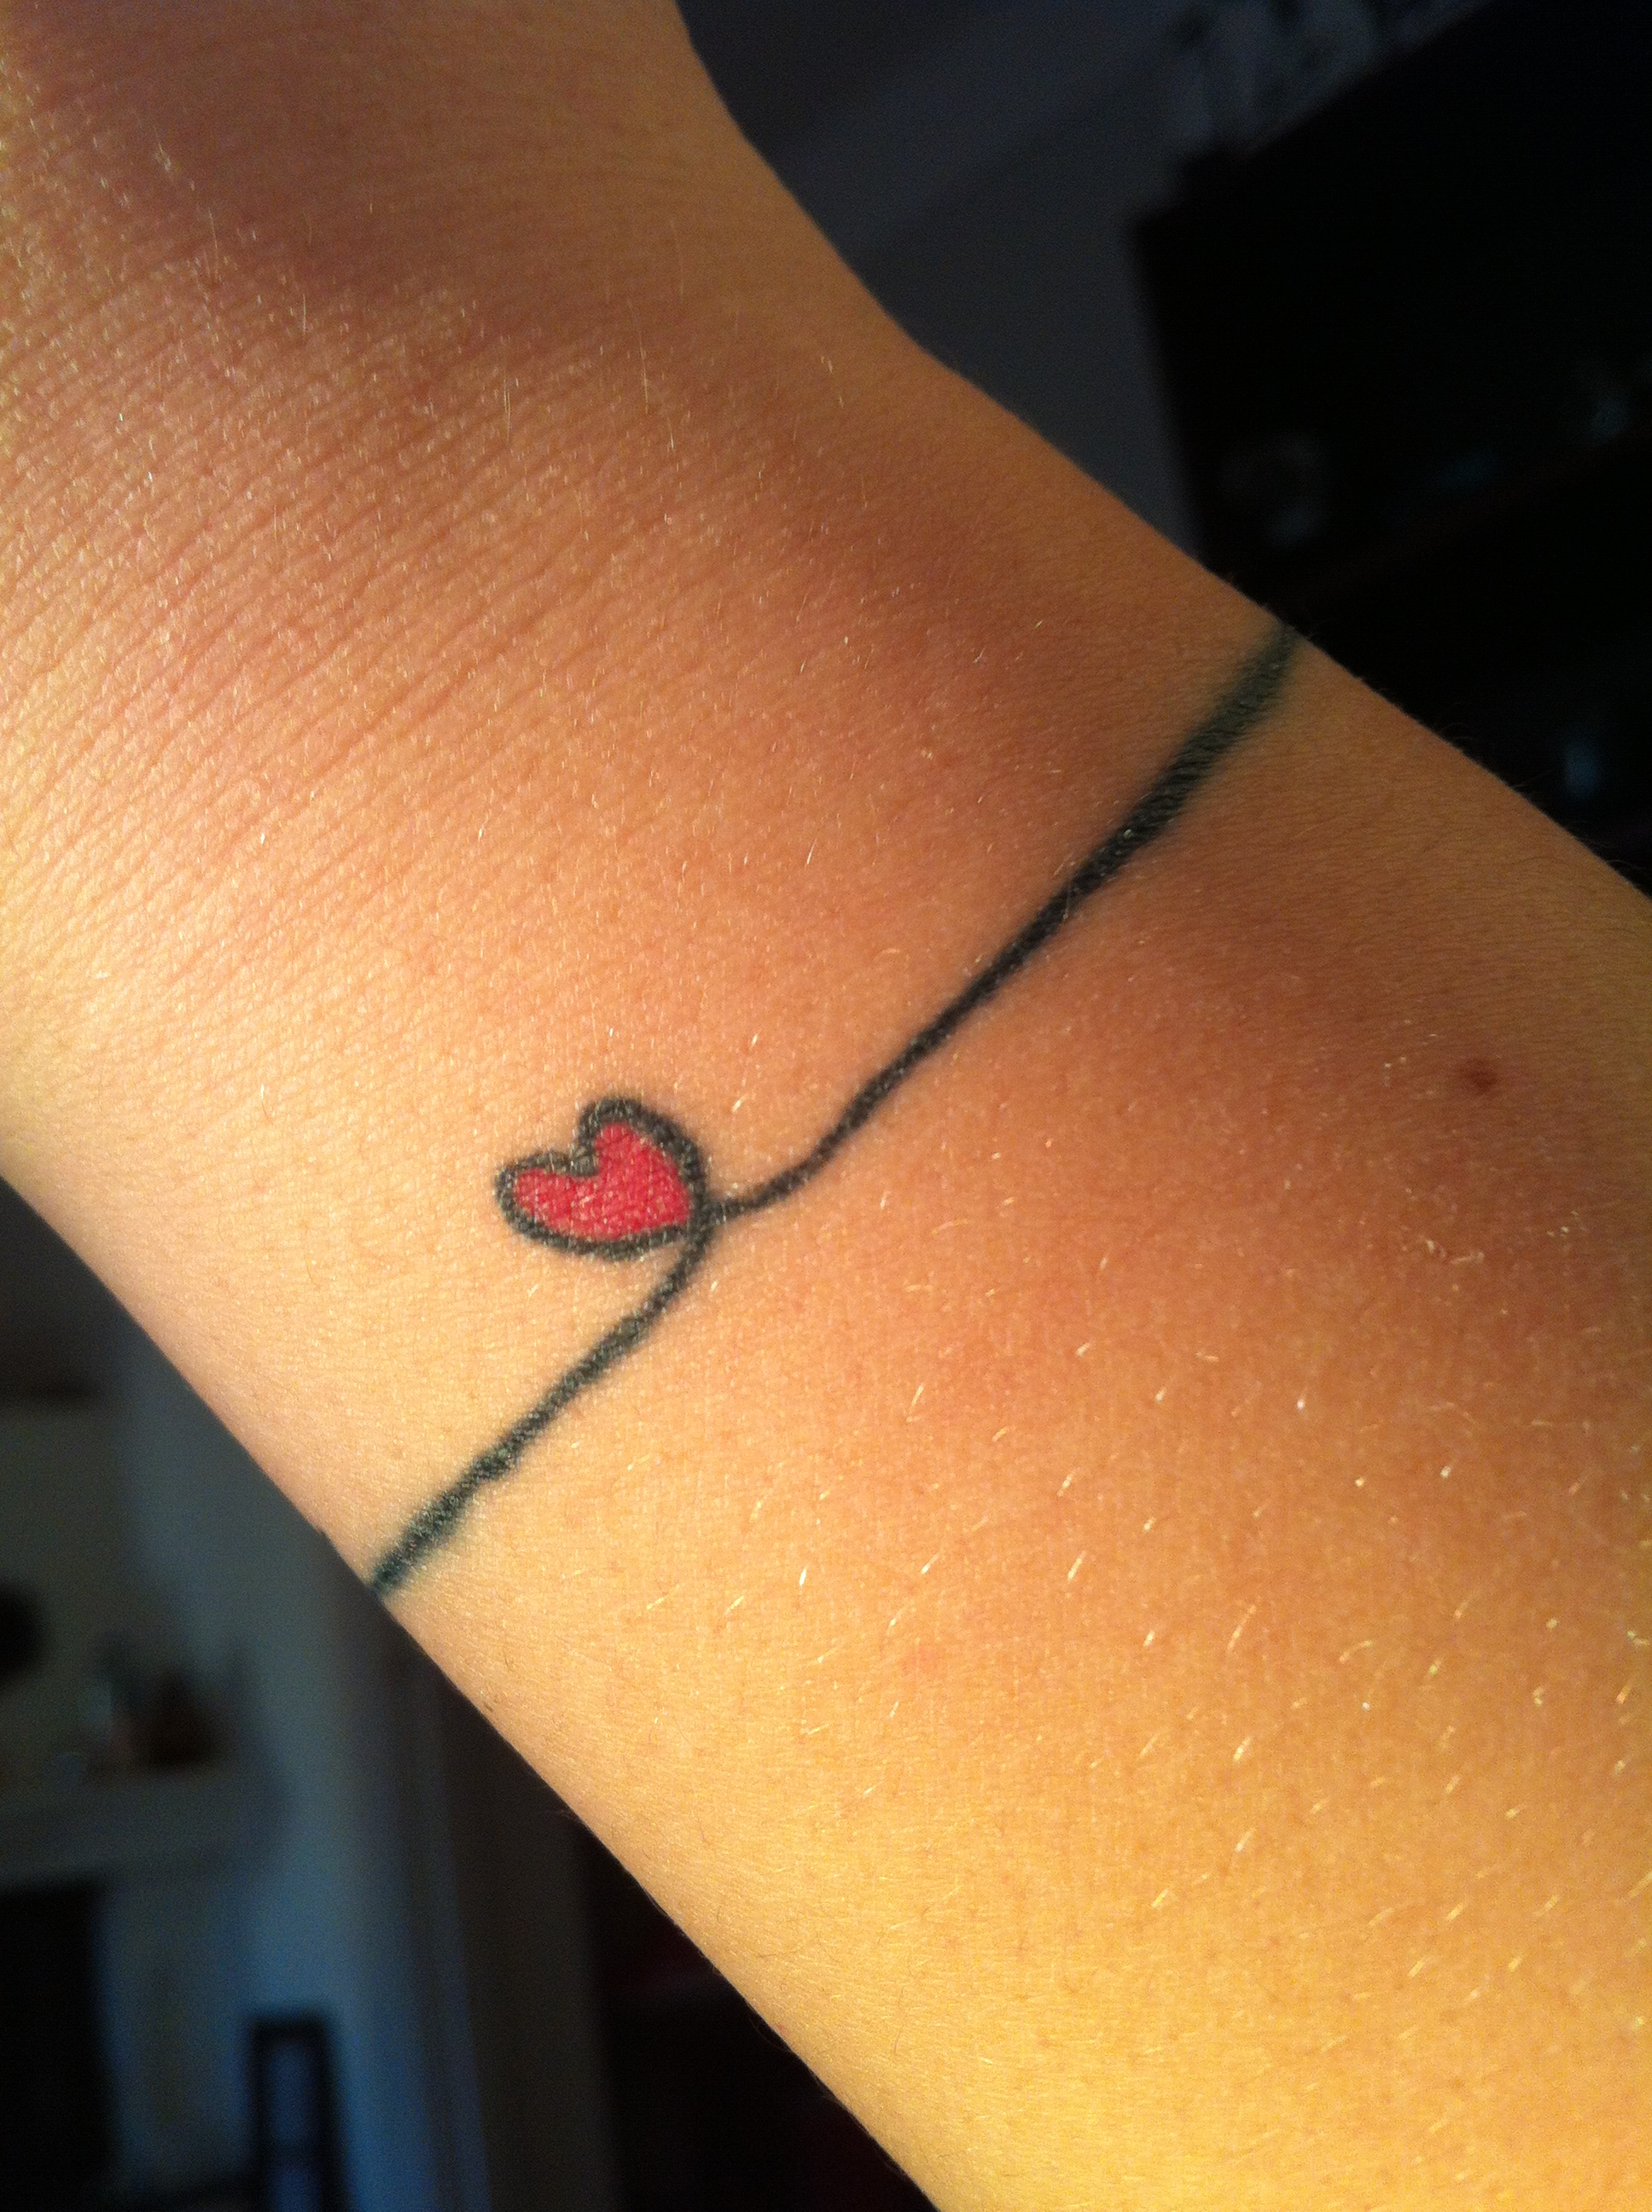 Little heart tattoo on wrist - 14small Heart Color And Thin Band Around Wrist